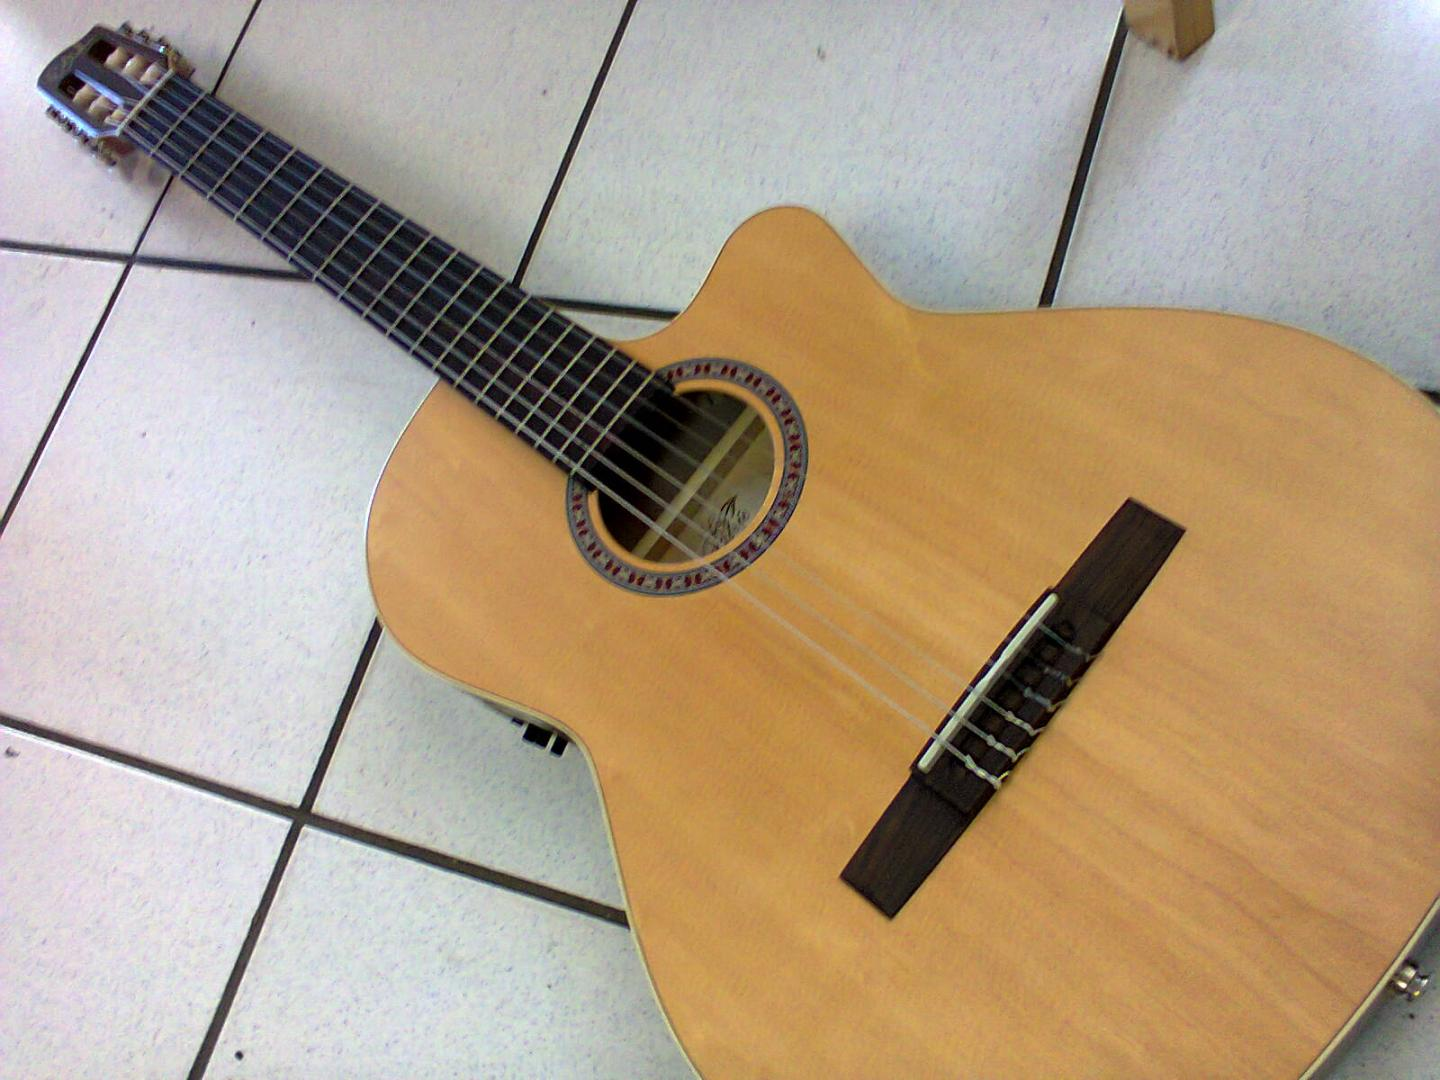 LA PATRIE Arena CW Q1T GUITARE ELECTRO CLASSIQUE PAN COUPE NATUREL SATINE LUTHIER CANADIEN. TABLE EPICEA MASSIF. DOS ECLISSES MERISIER. MANCHE ACAJOU. TOUCHE & CHEVALET PALISSANDRE. PREAMPLI GODIN Q1T